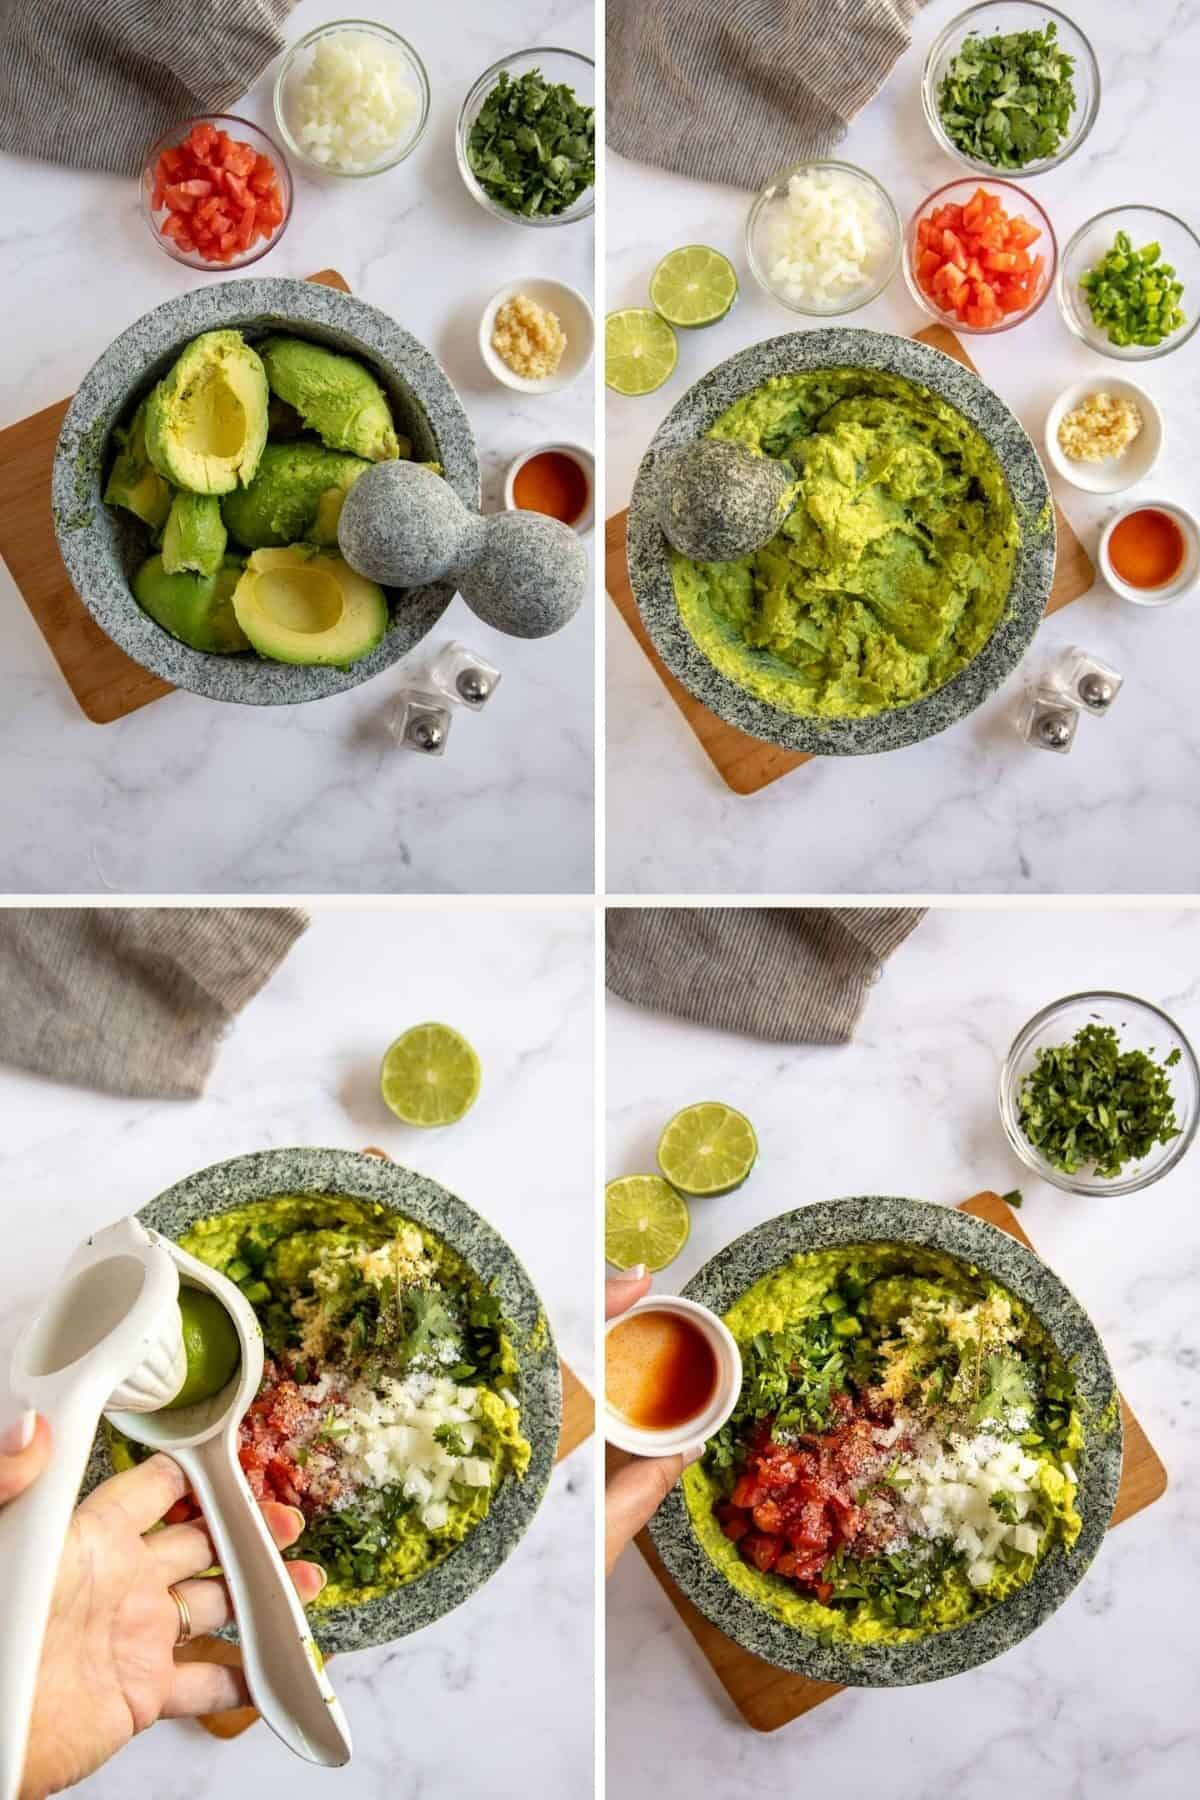 step by step photos showing how to make guacamole